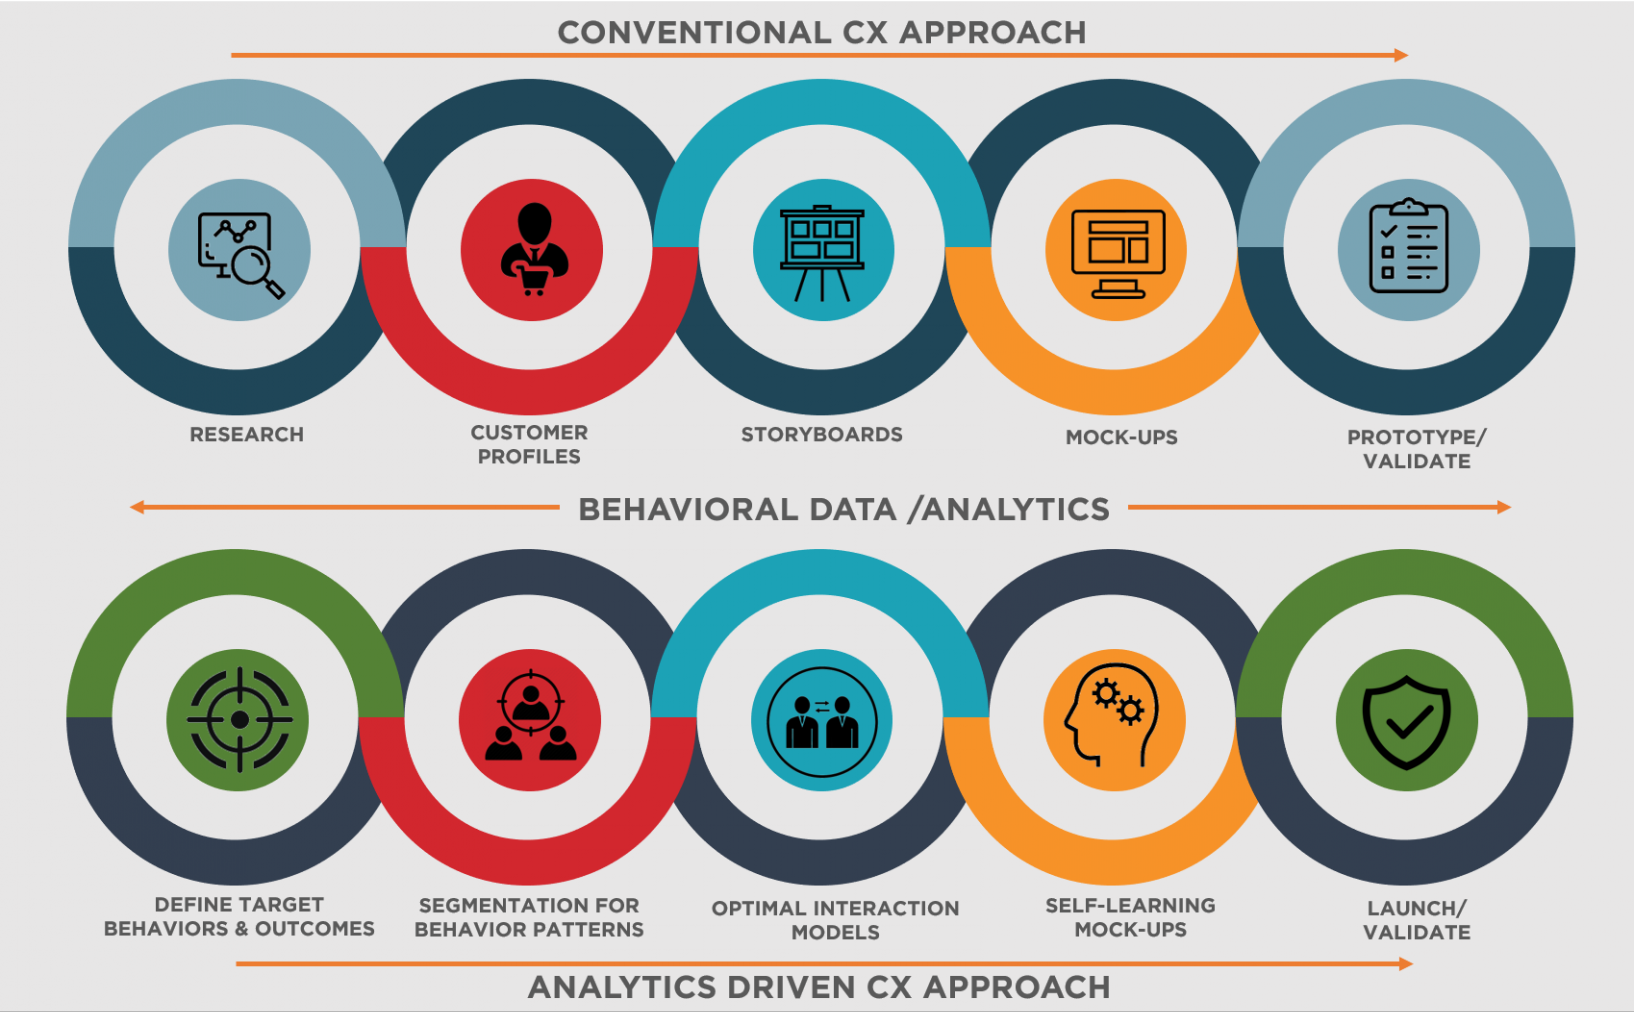 Difference between conventional CX approach and the advanced data modeling approach used by Hyper-personalization.